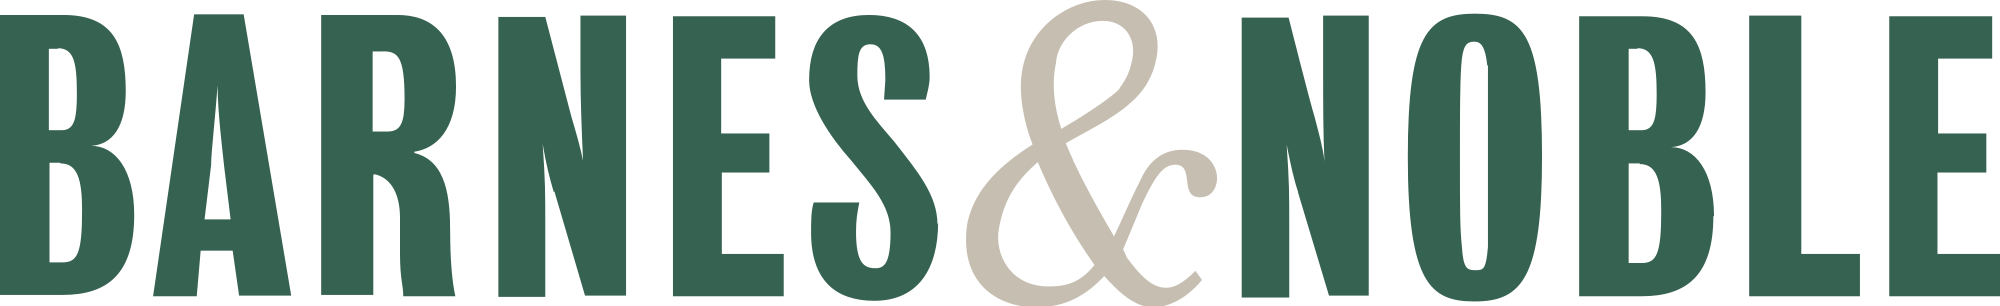 Barnes and noble logo png. File svg wikimedia commons